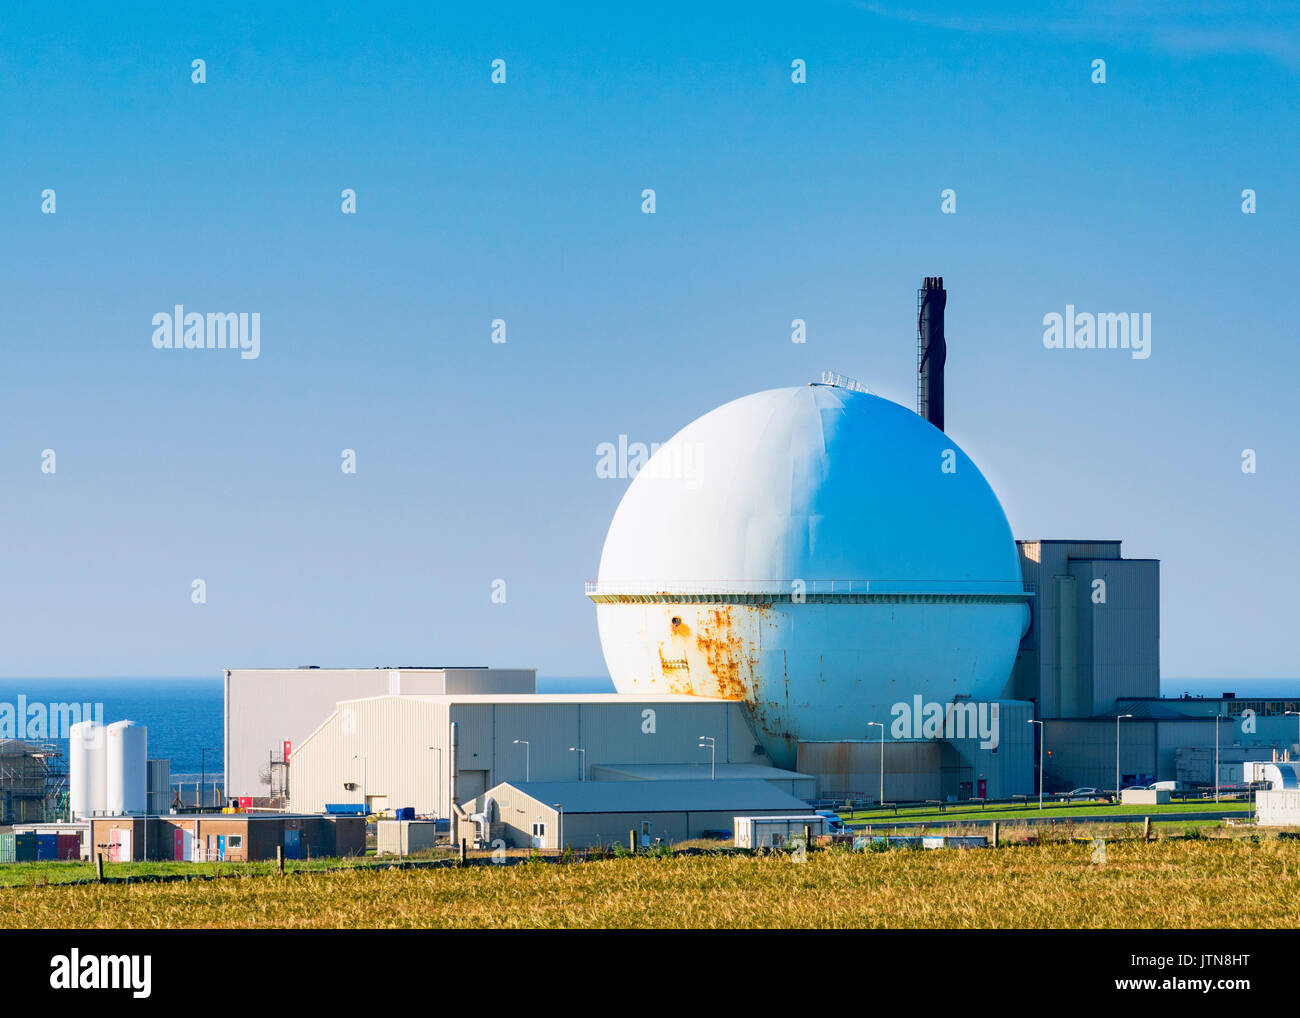 View of Dounreay nuclear power station in northern Scotland, now being decommissioned. - Stock Image